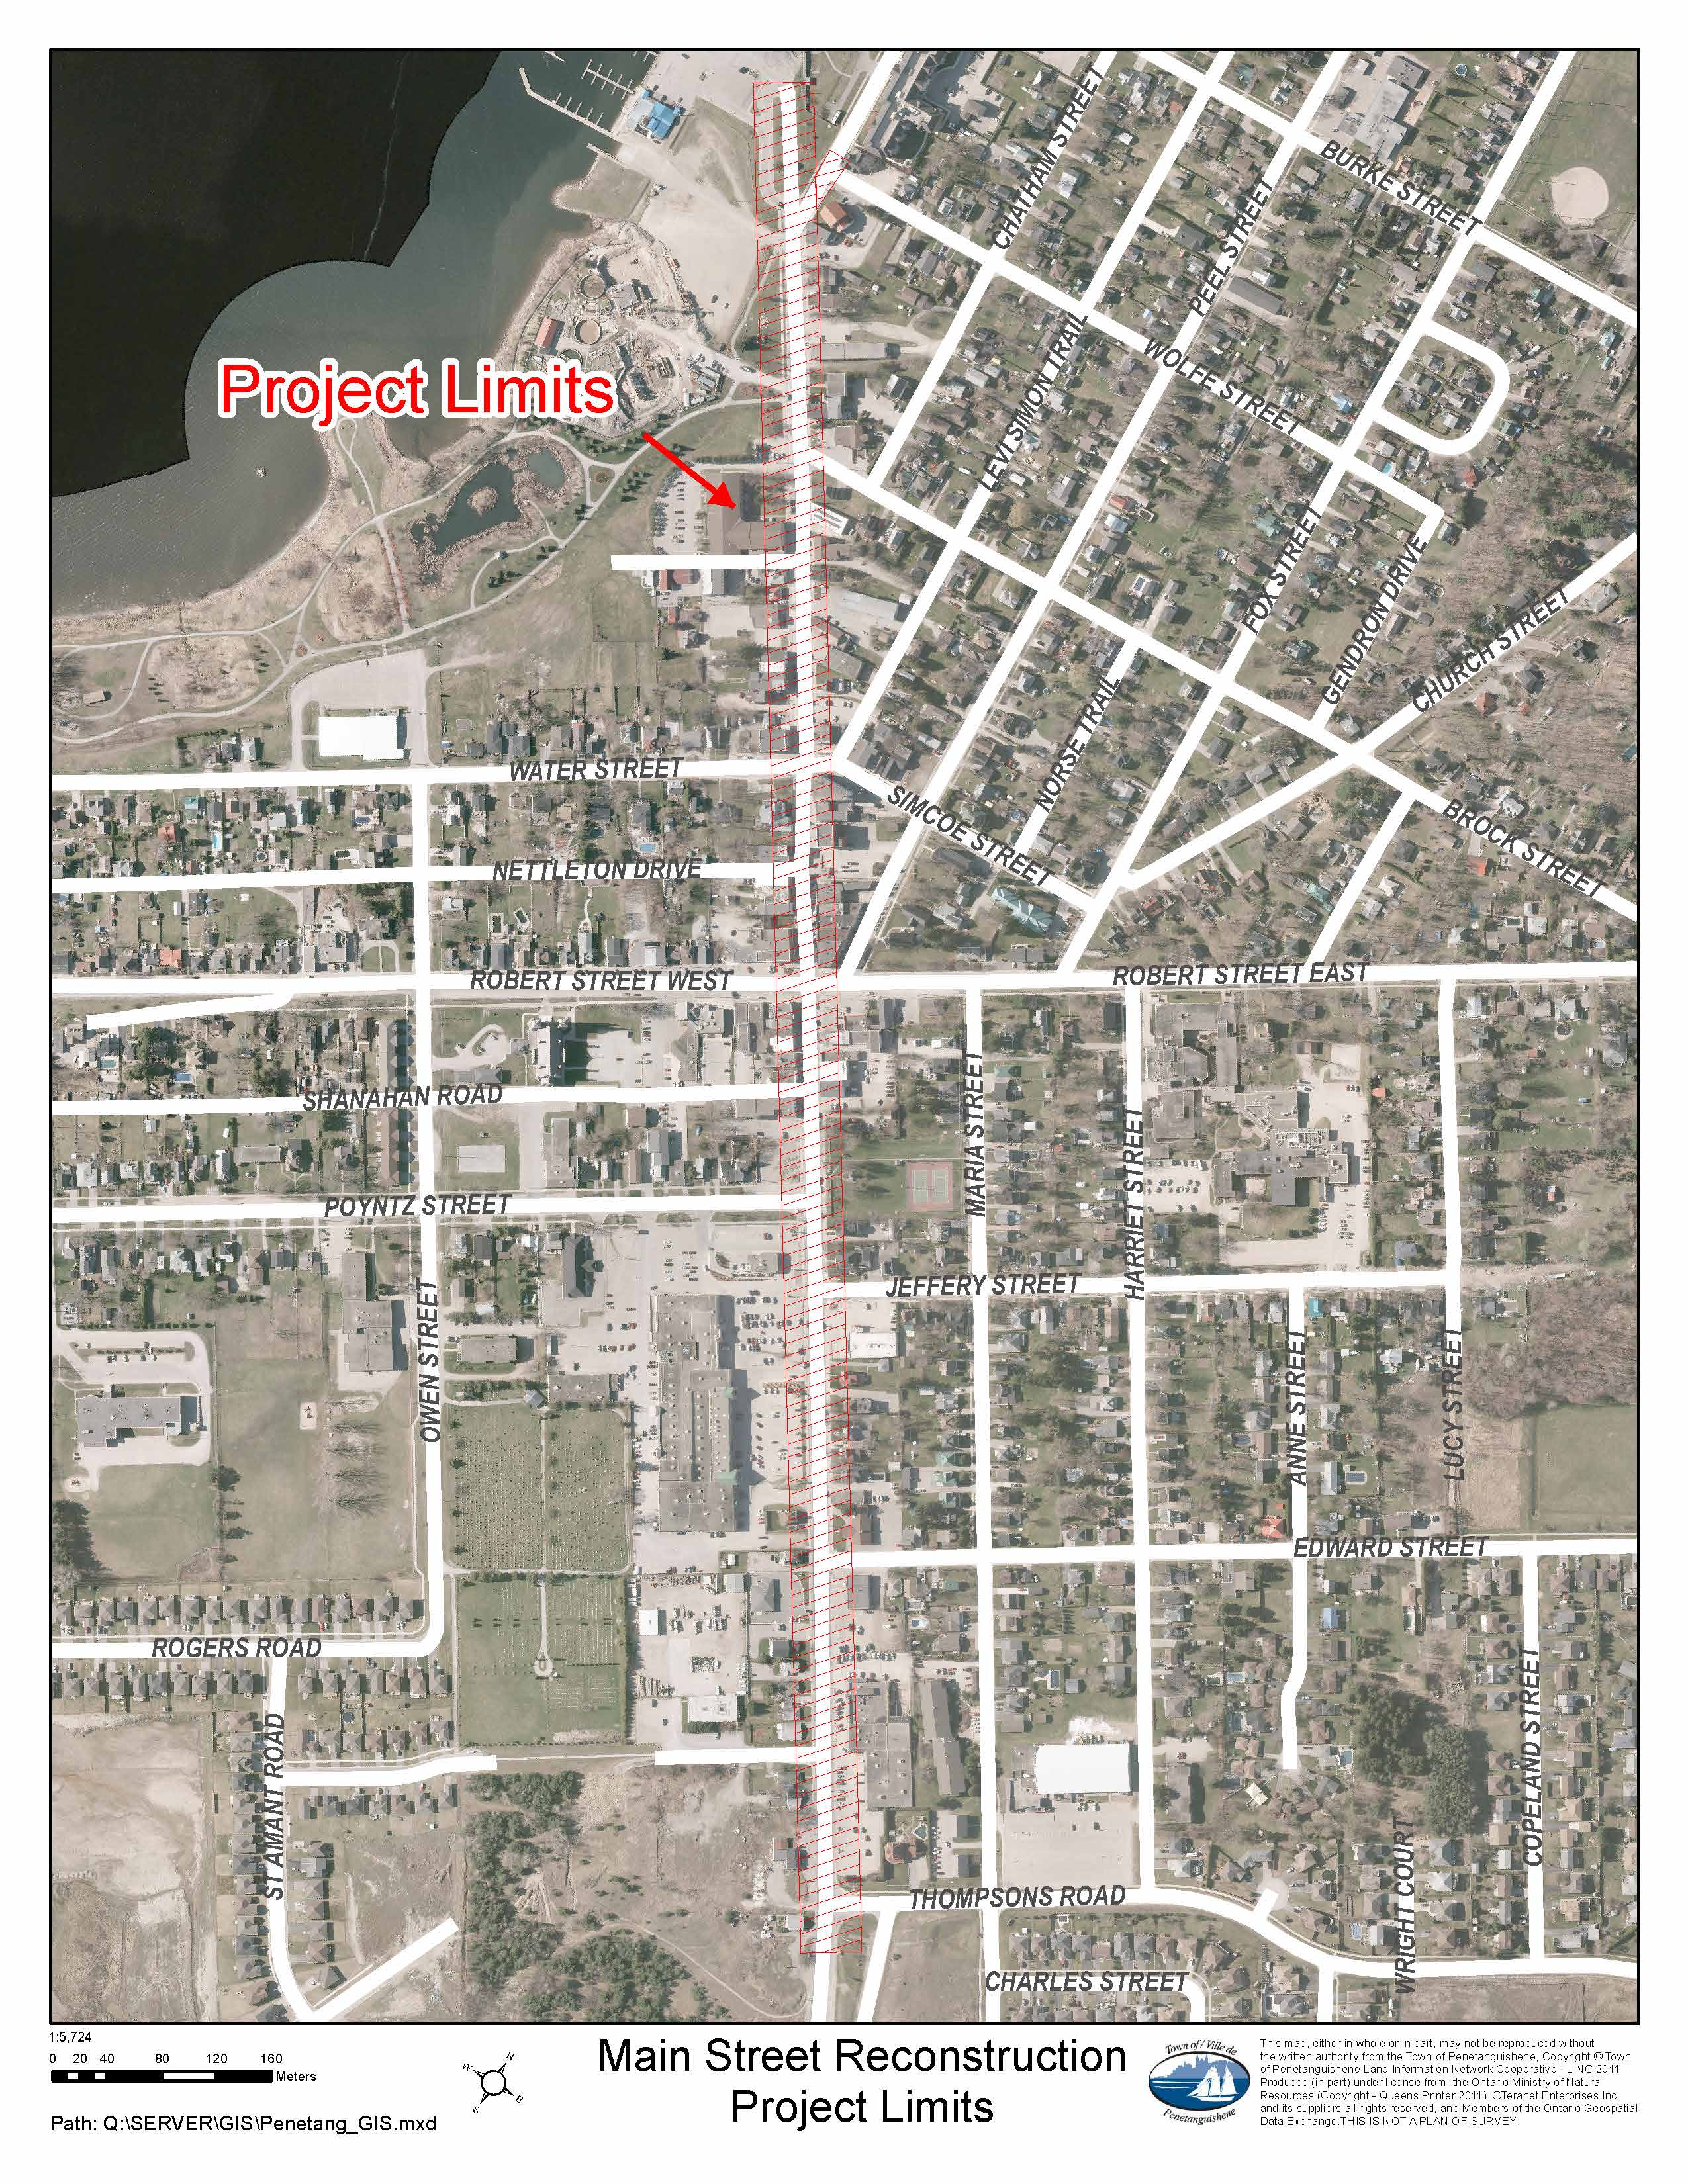 Main Street Reconstruction Project limits